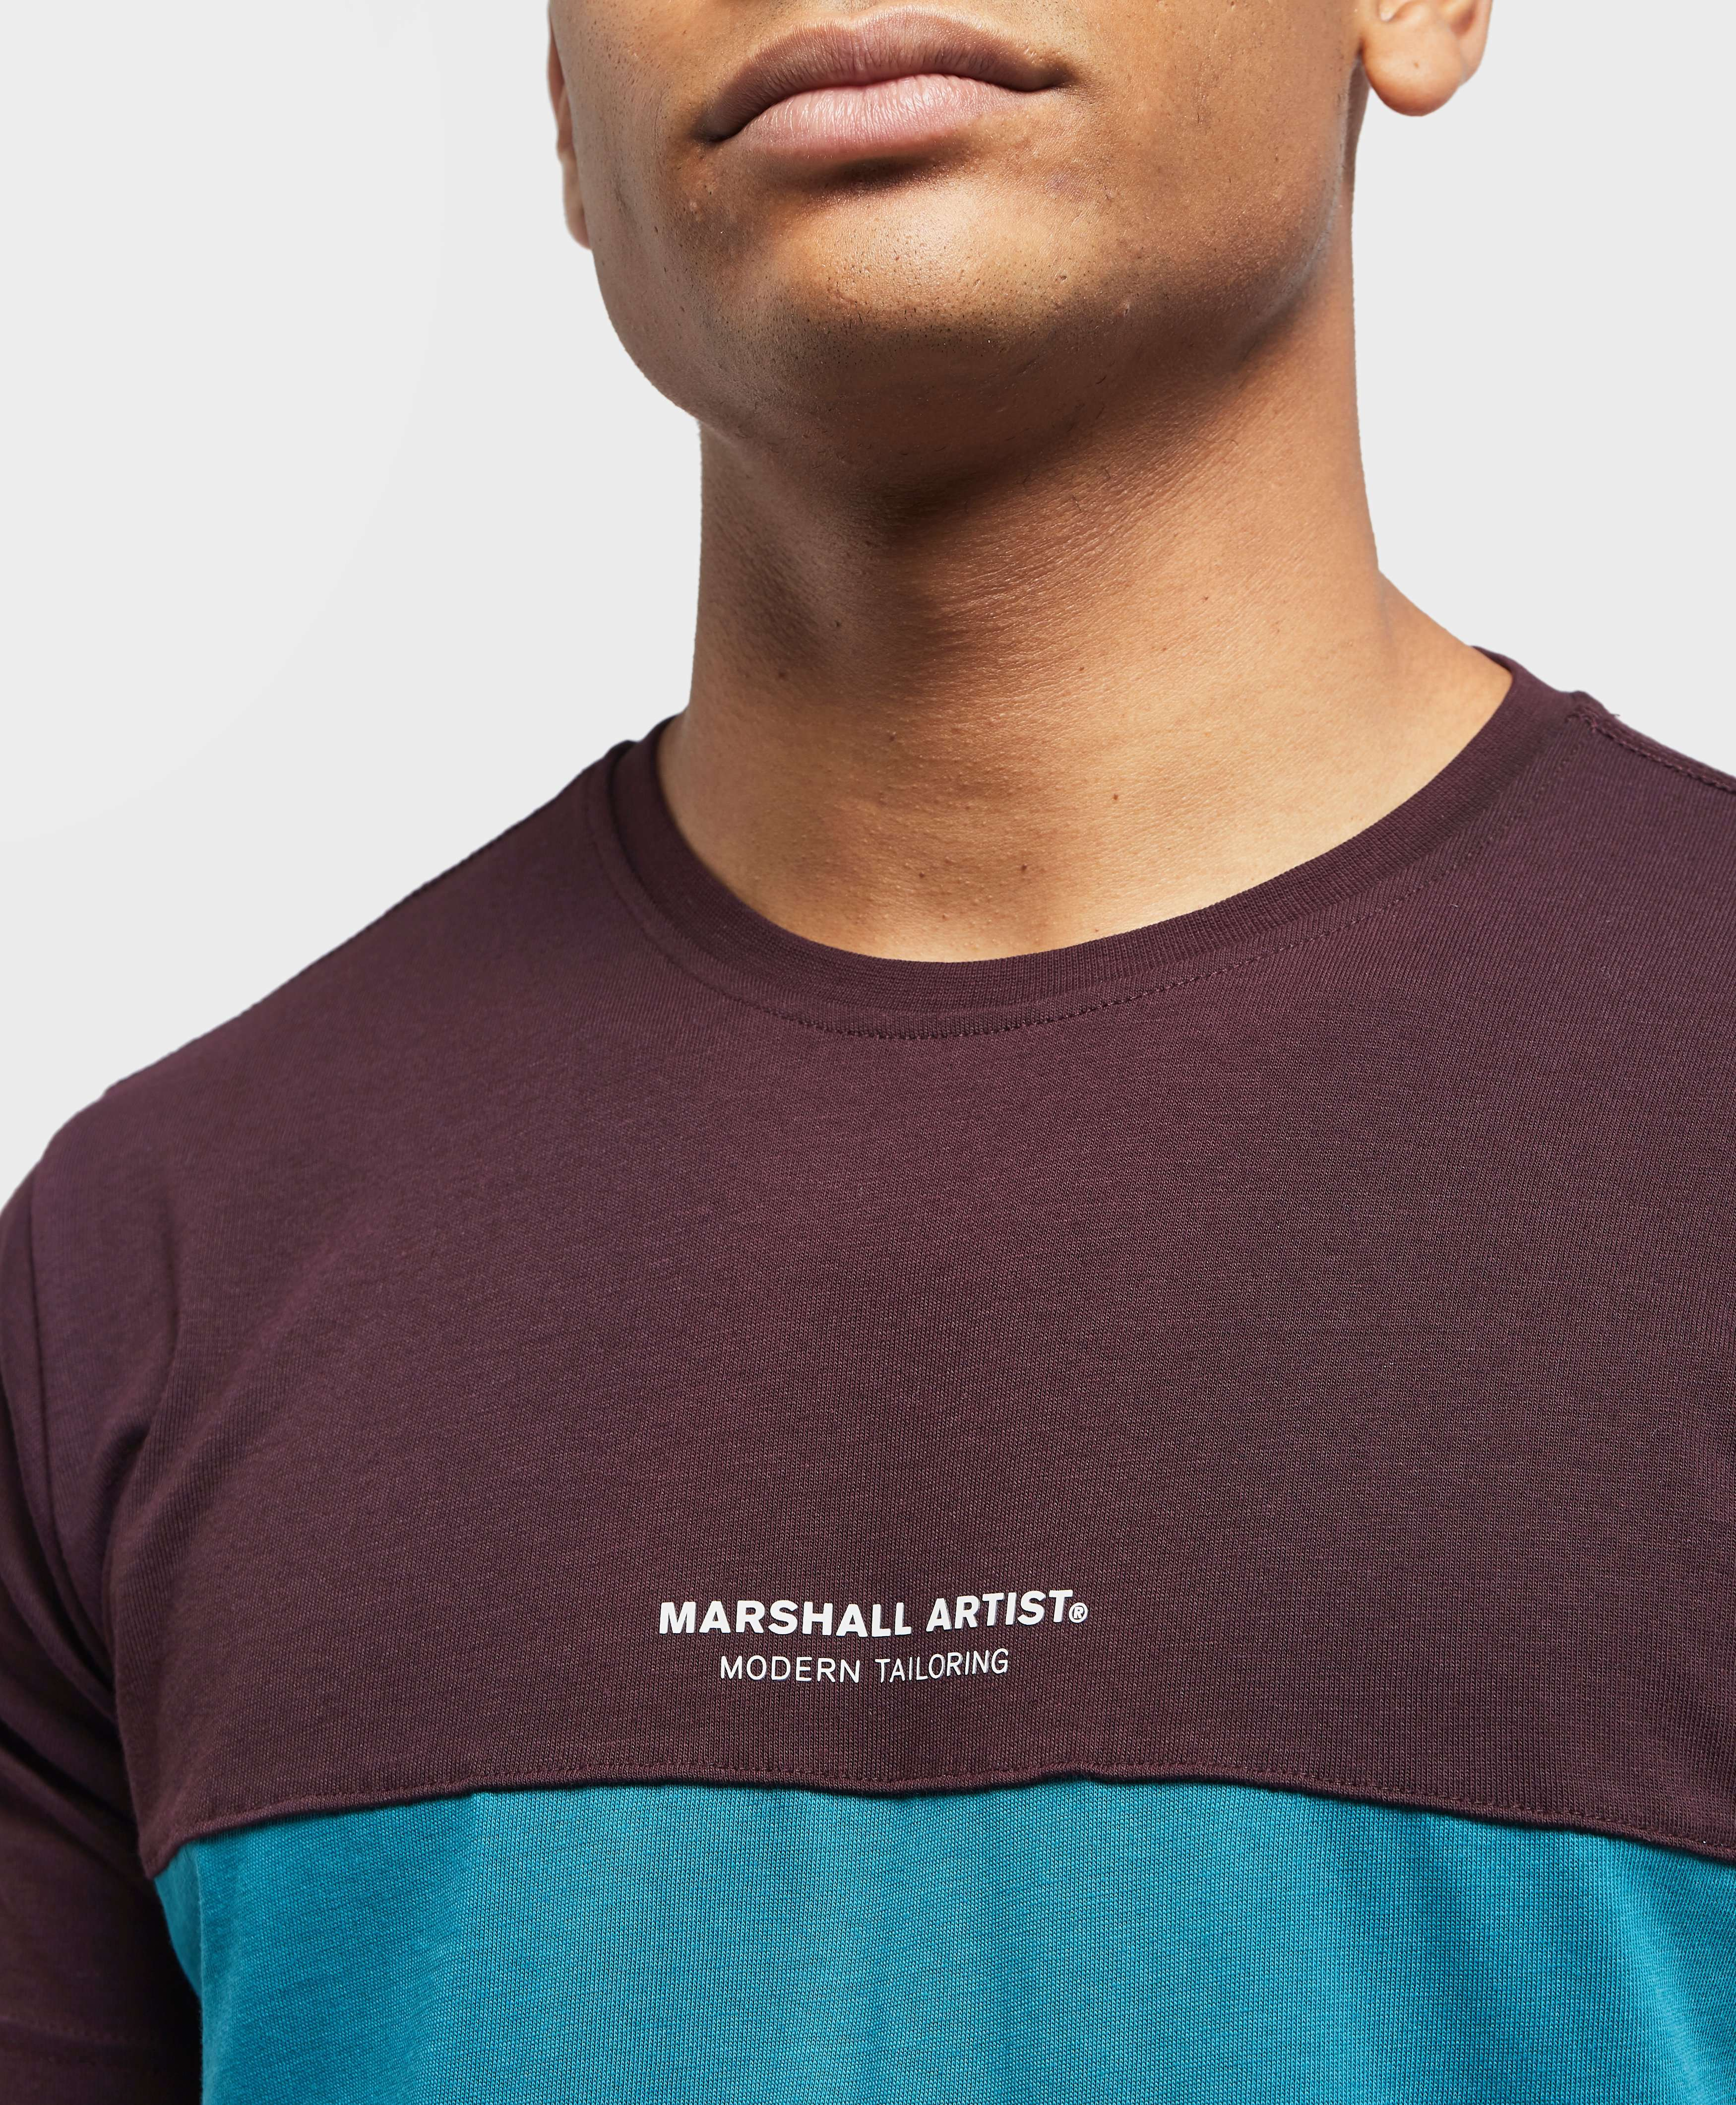 Marshall Artist Crown Heights Short Sleeve T-Shirt